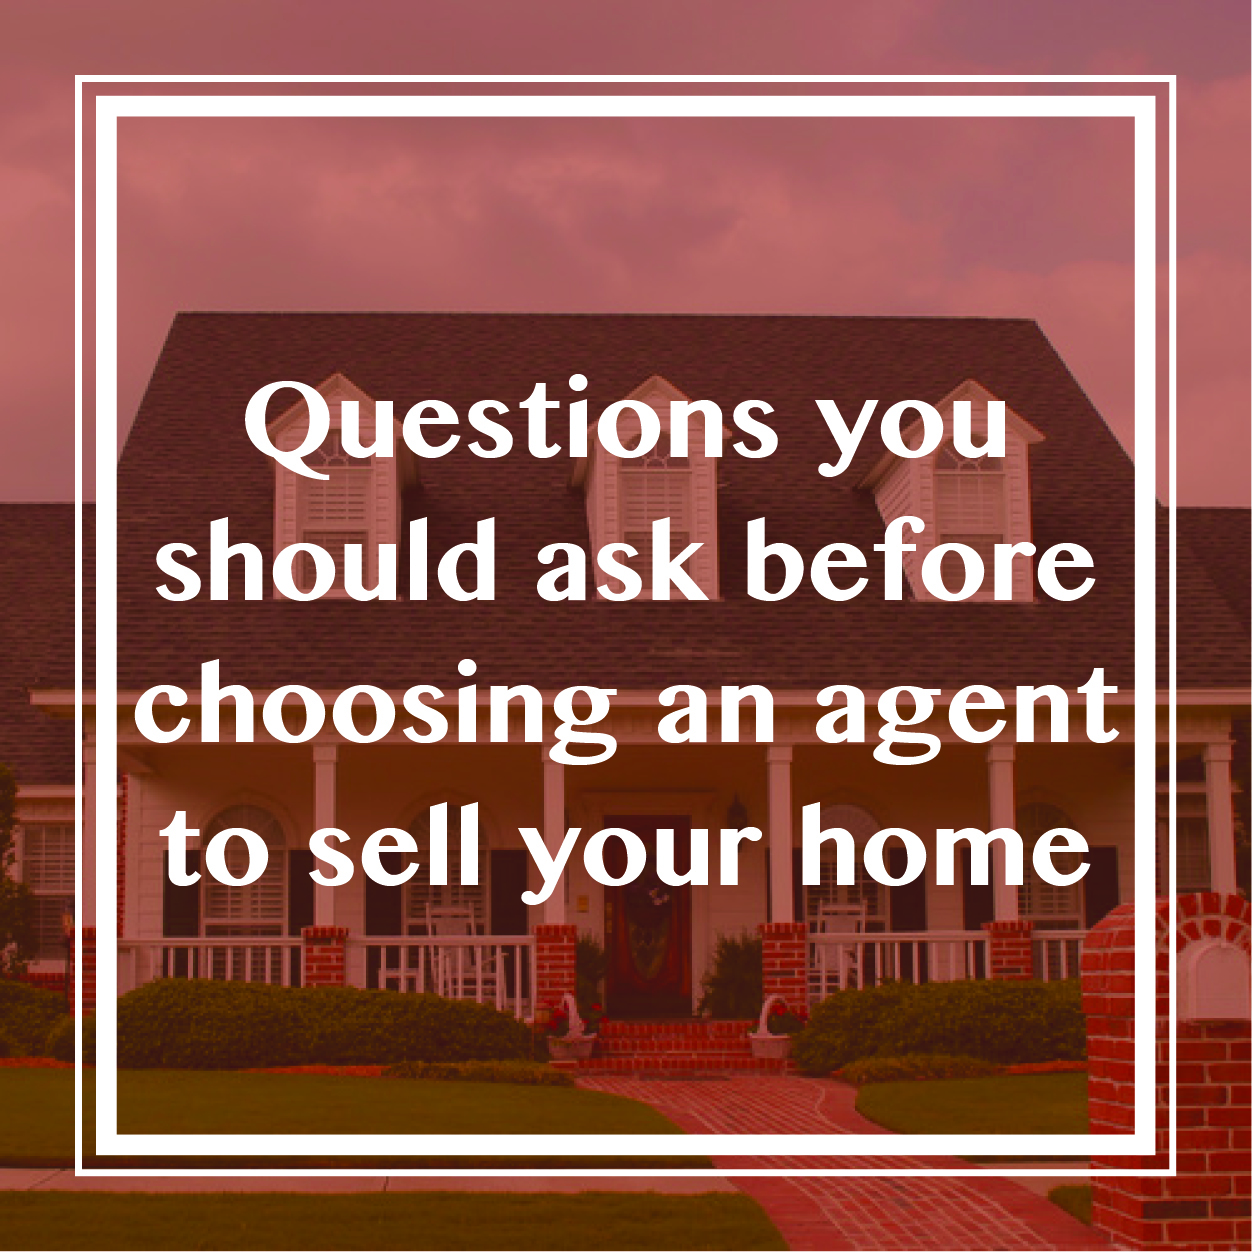 42 Questions To Ask Your Realtor When Selling Your Home